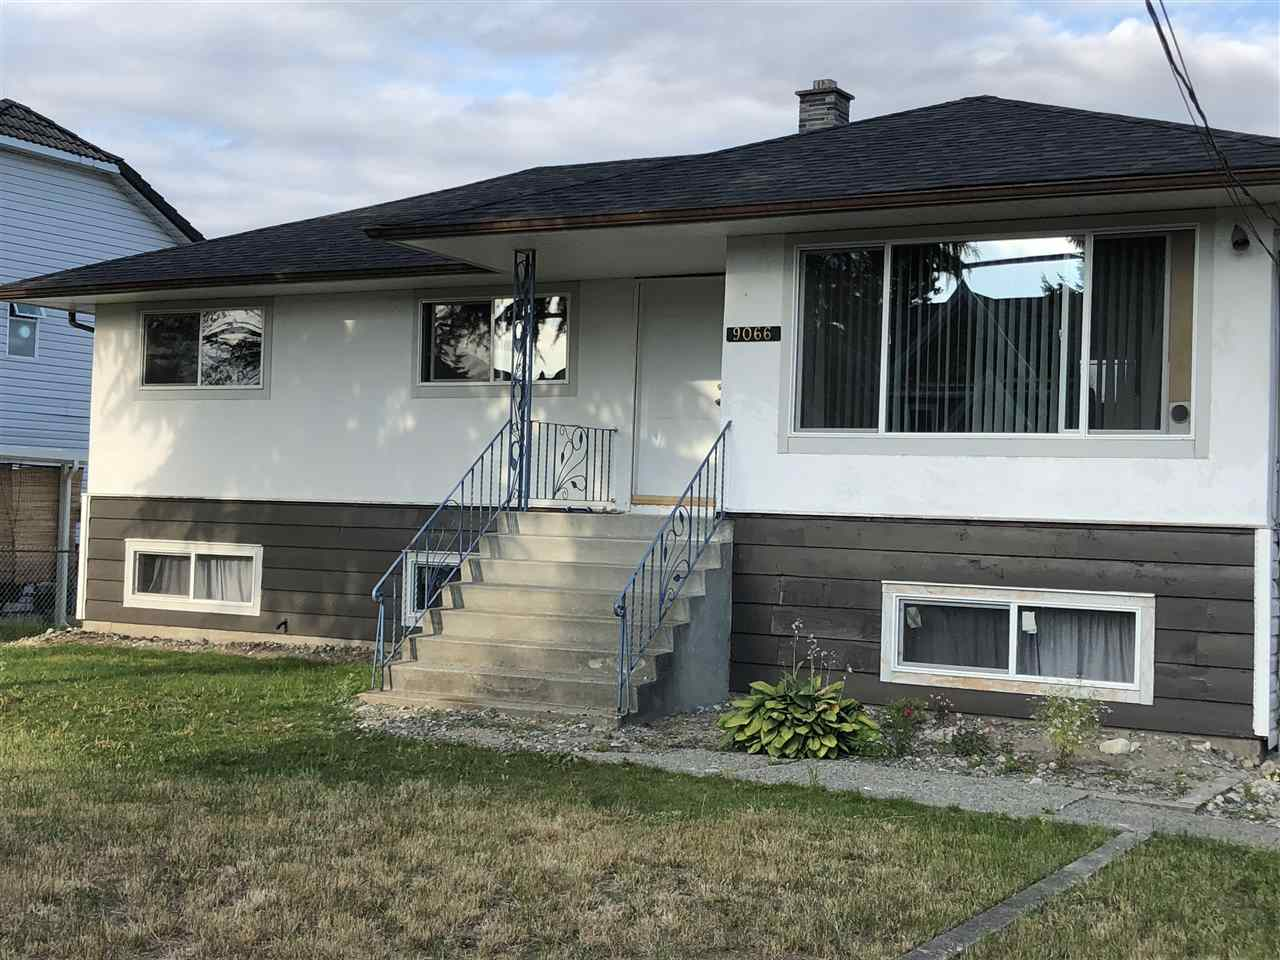 Bungalow with basement on 8024 sq ft lot with back lane. 2,100 sqft of living area, total of 6 bdrms, 2 full baths and 2 two-piece baths. Main floor has 3 bdrms, living room, eating area, kitchen & huge sundeck (perfect for entertaining family & friends) Bsmt has large living room, 3 good size bdrms & kitchen. Over $50,000 spent on renovations in the last 2 years. Recent updates include: New windows, new roof, new kitchen cabinets with quartz counters in the basement, new tile floor in the basement, updated bathrooms, new drain tiles around perimeter of the house Excellent location close to shops, school, bus and hwy access.